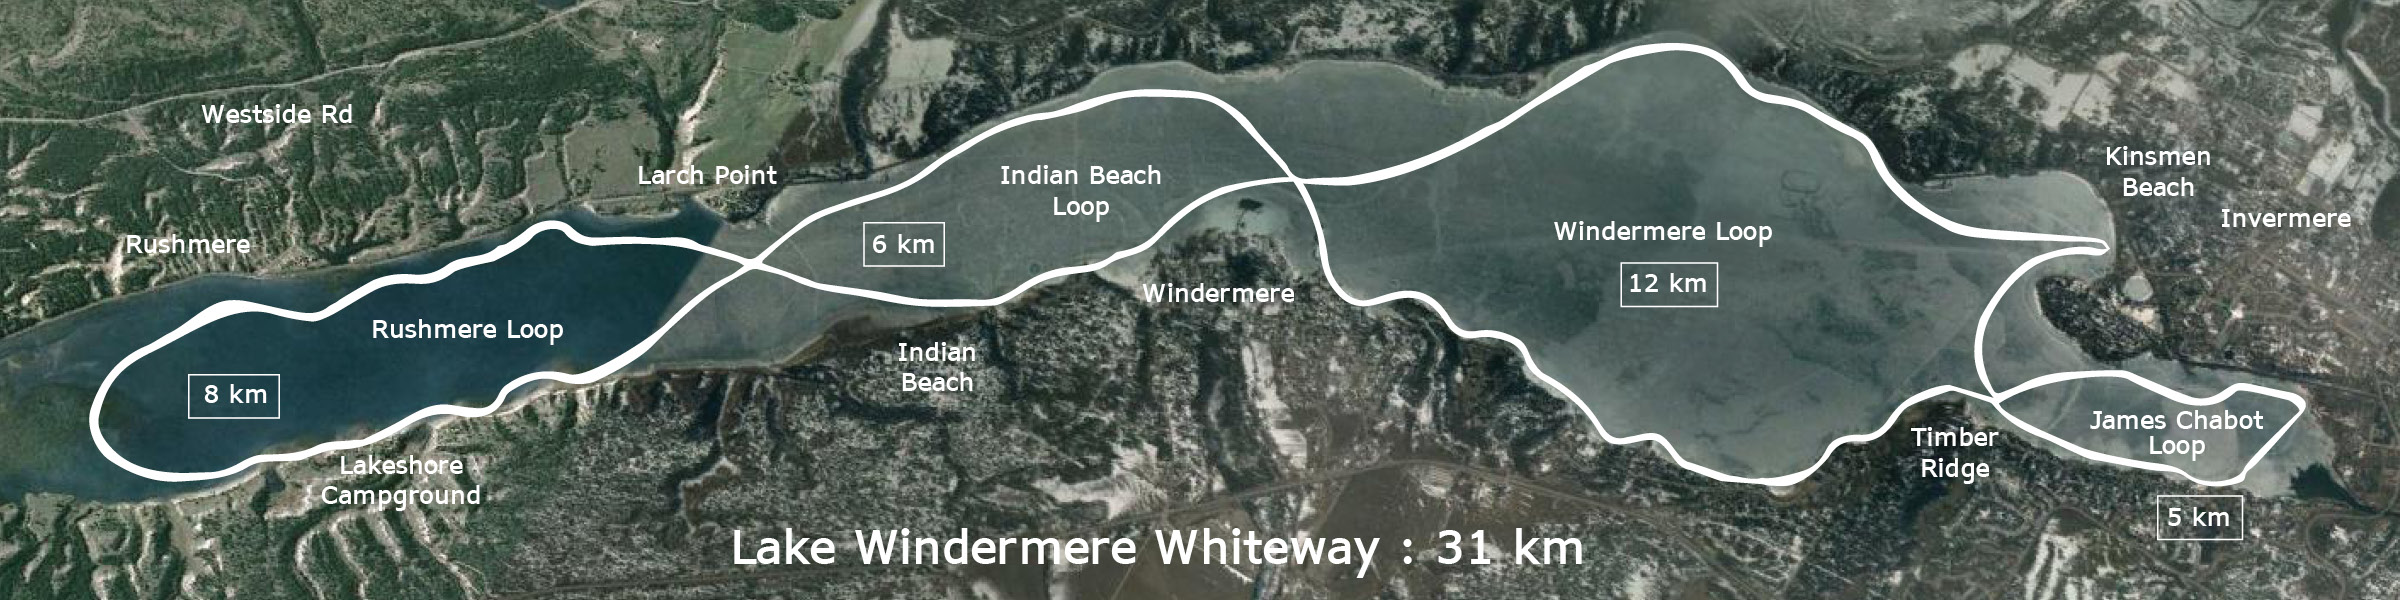 Lake Windermere Whiteway Map Invermere BC